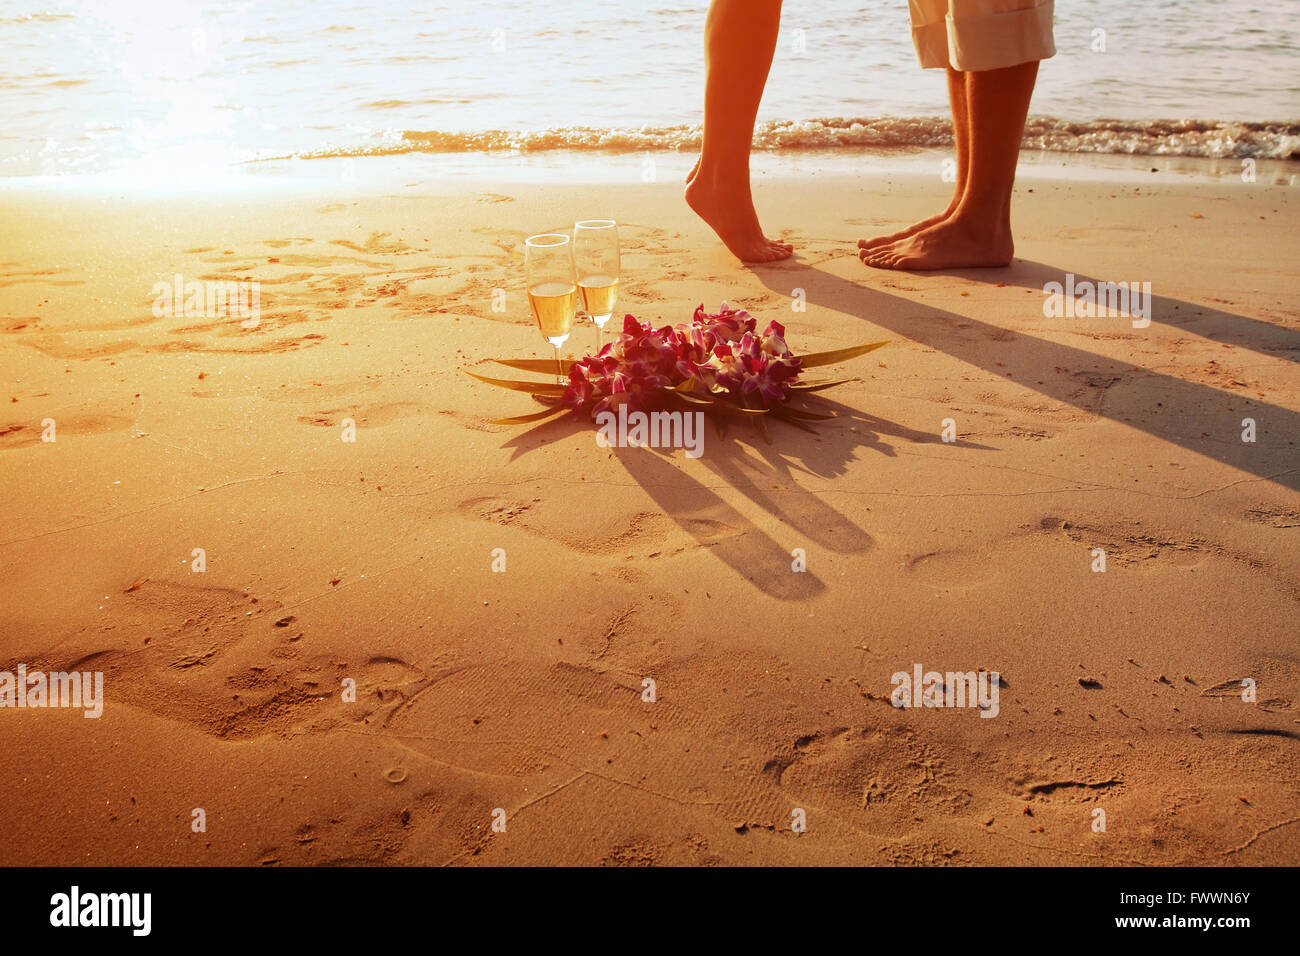 wedding on the beach, feet of romantic couple and two glasses of champagne at sunset Stock Photo